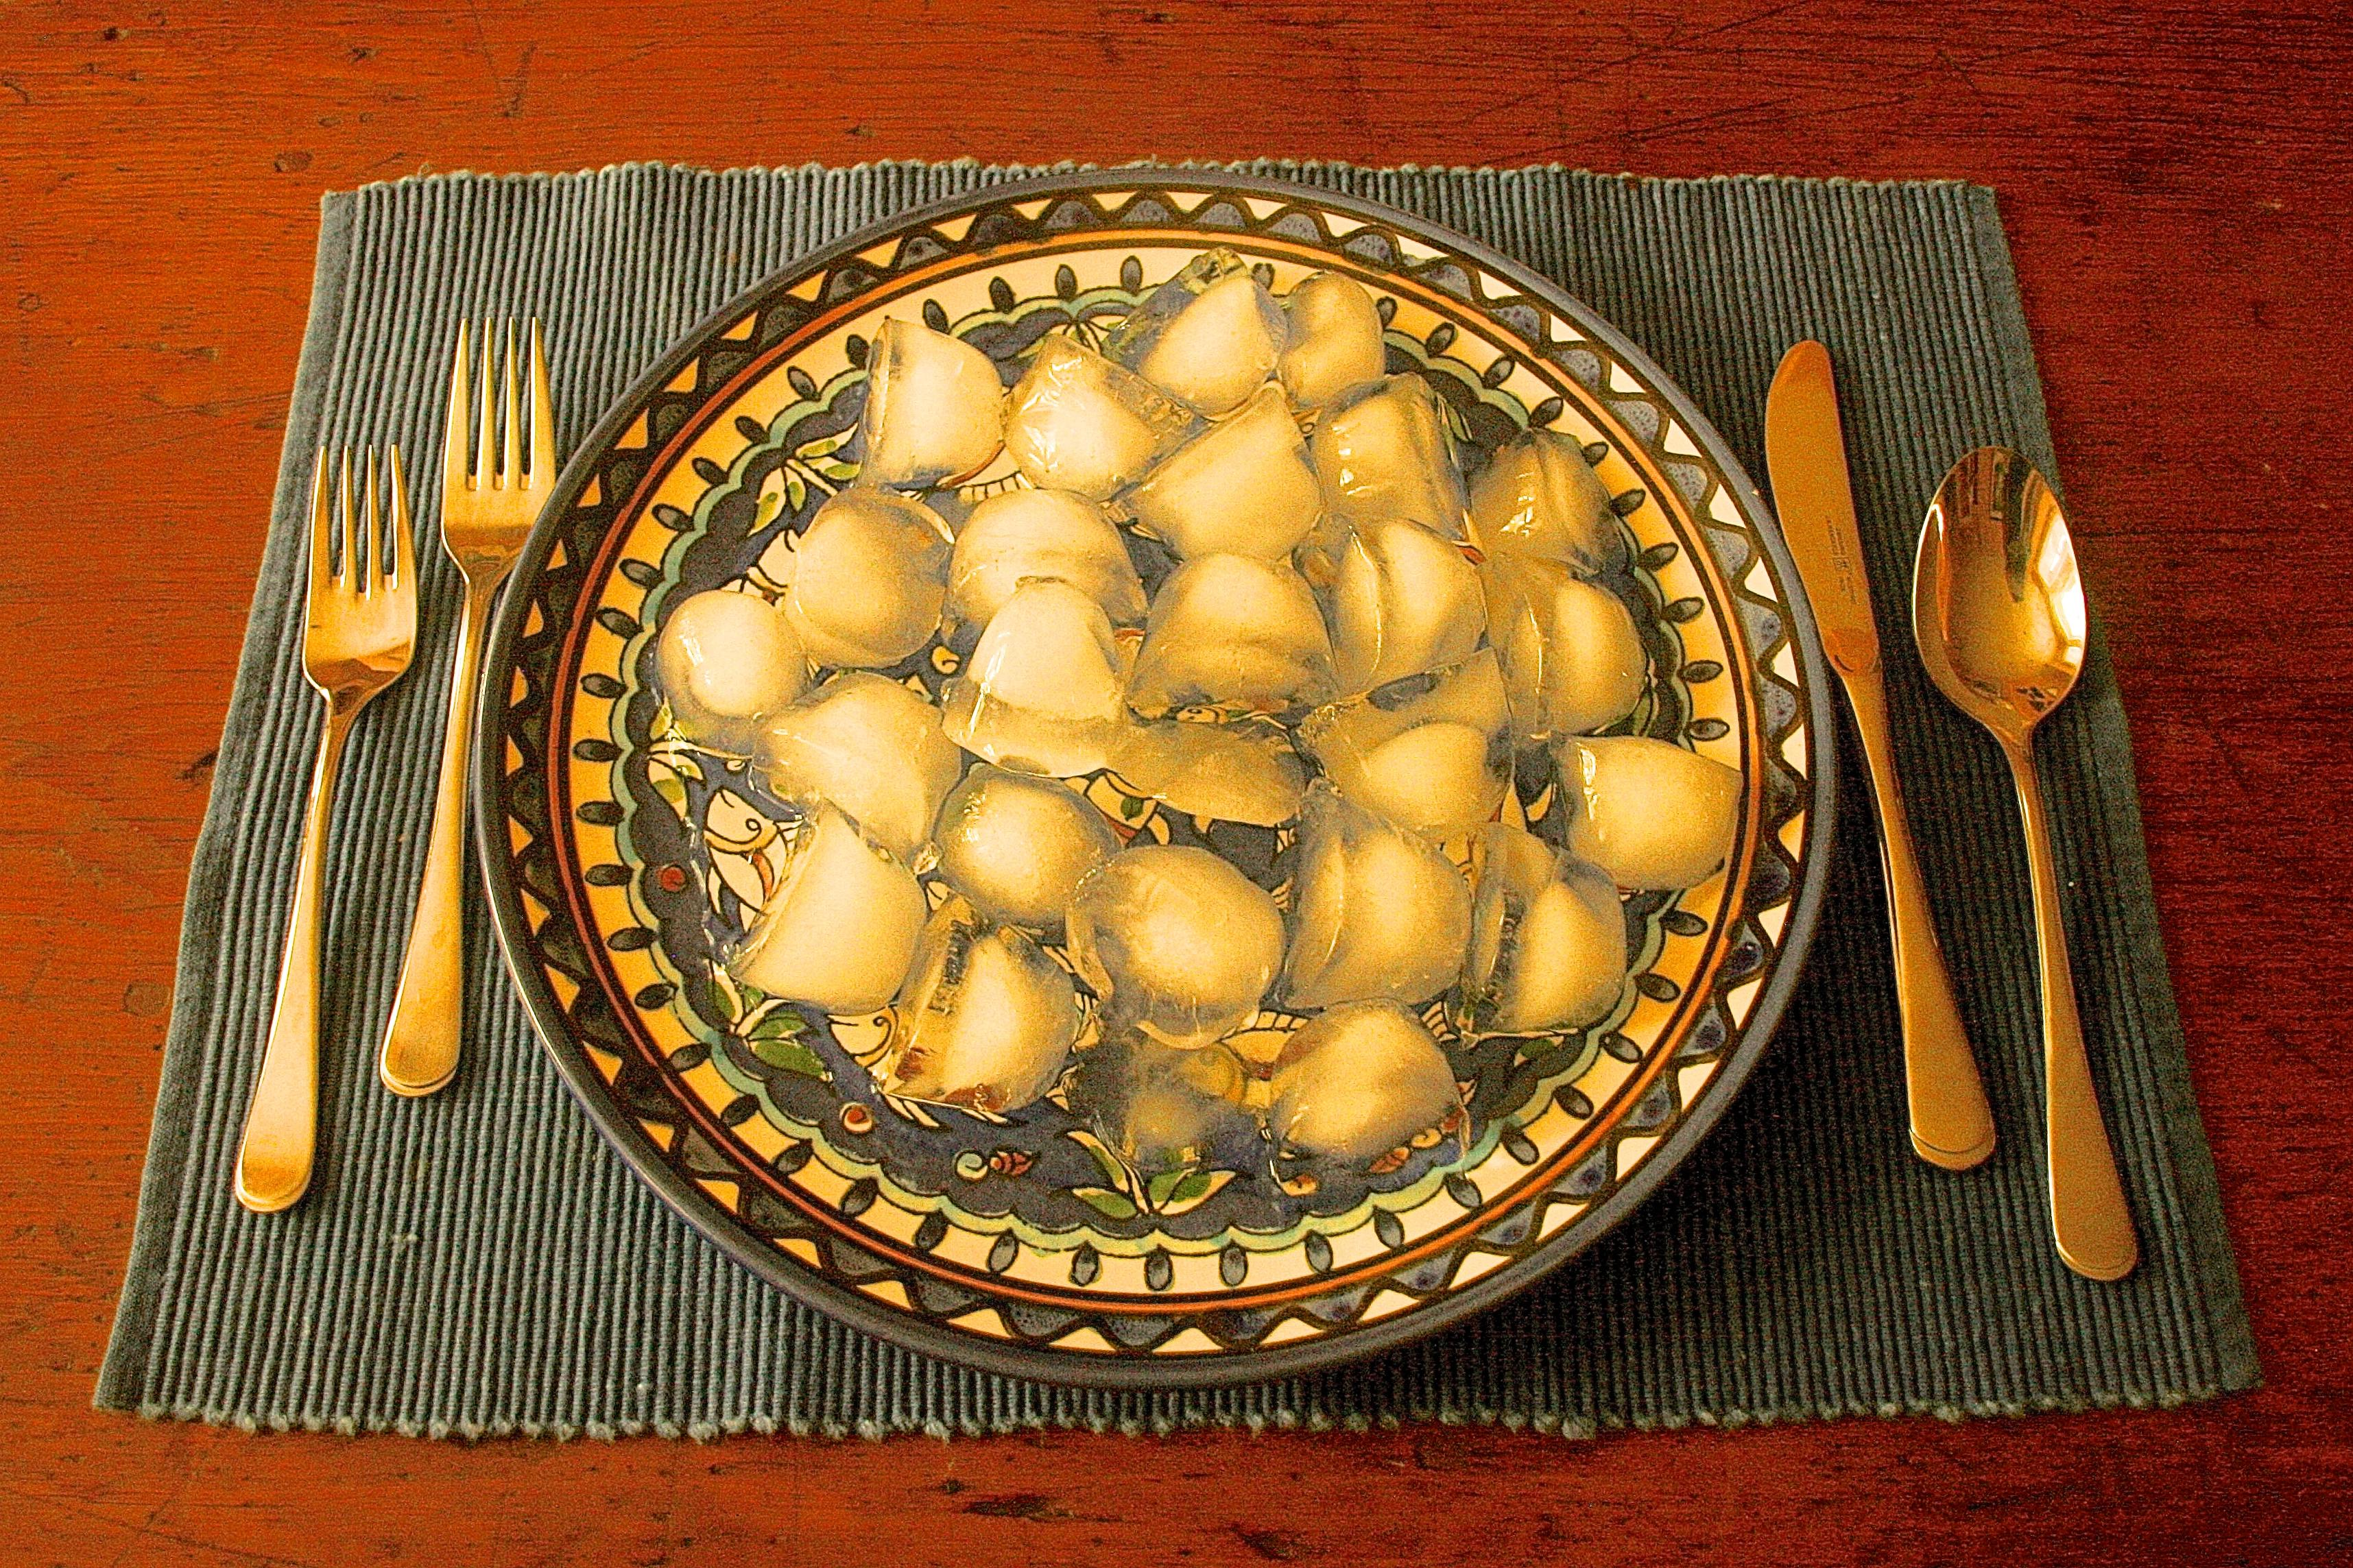 Dinner Plate full of ice cubes: A perfect vegan, gluten-free, soy-free, antibiotics-free, raw, non-GMO, organic, fat-free, low-carb meal!